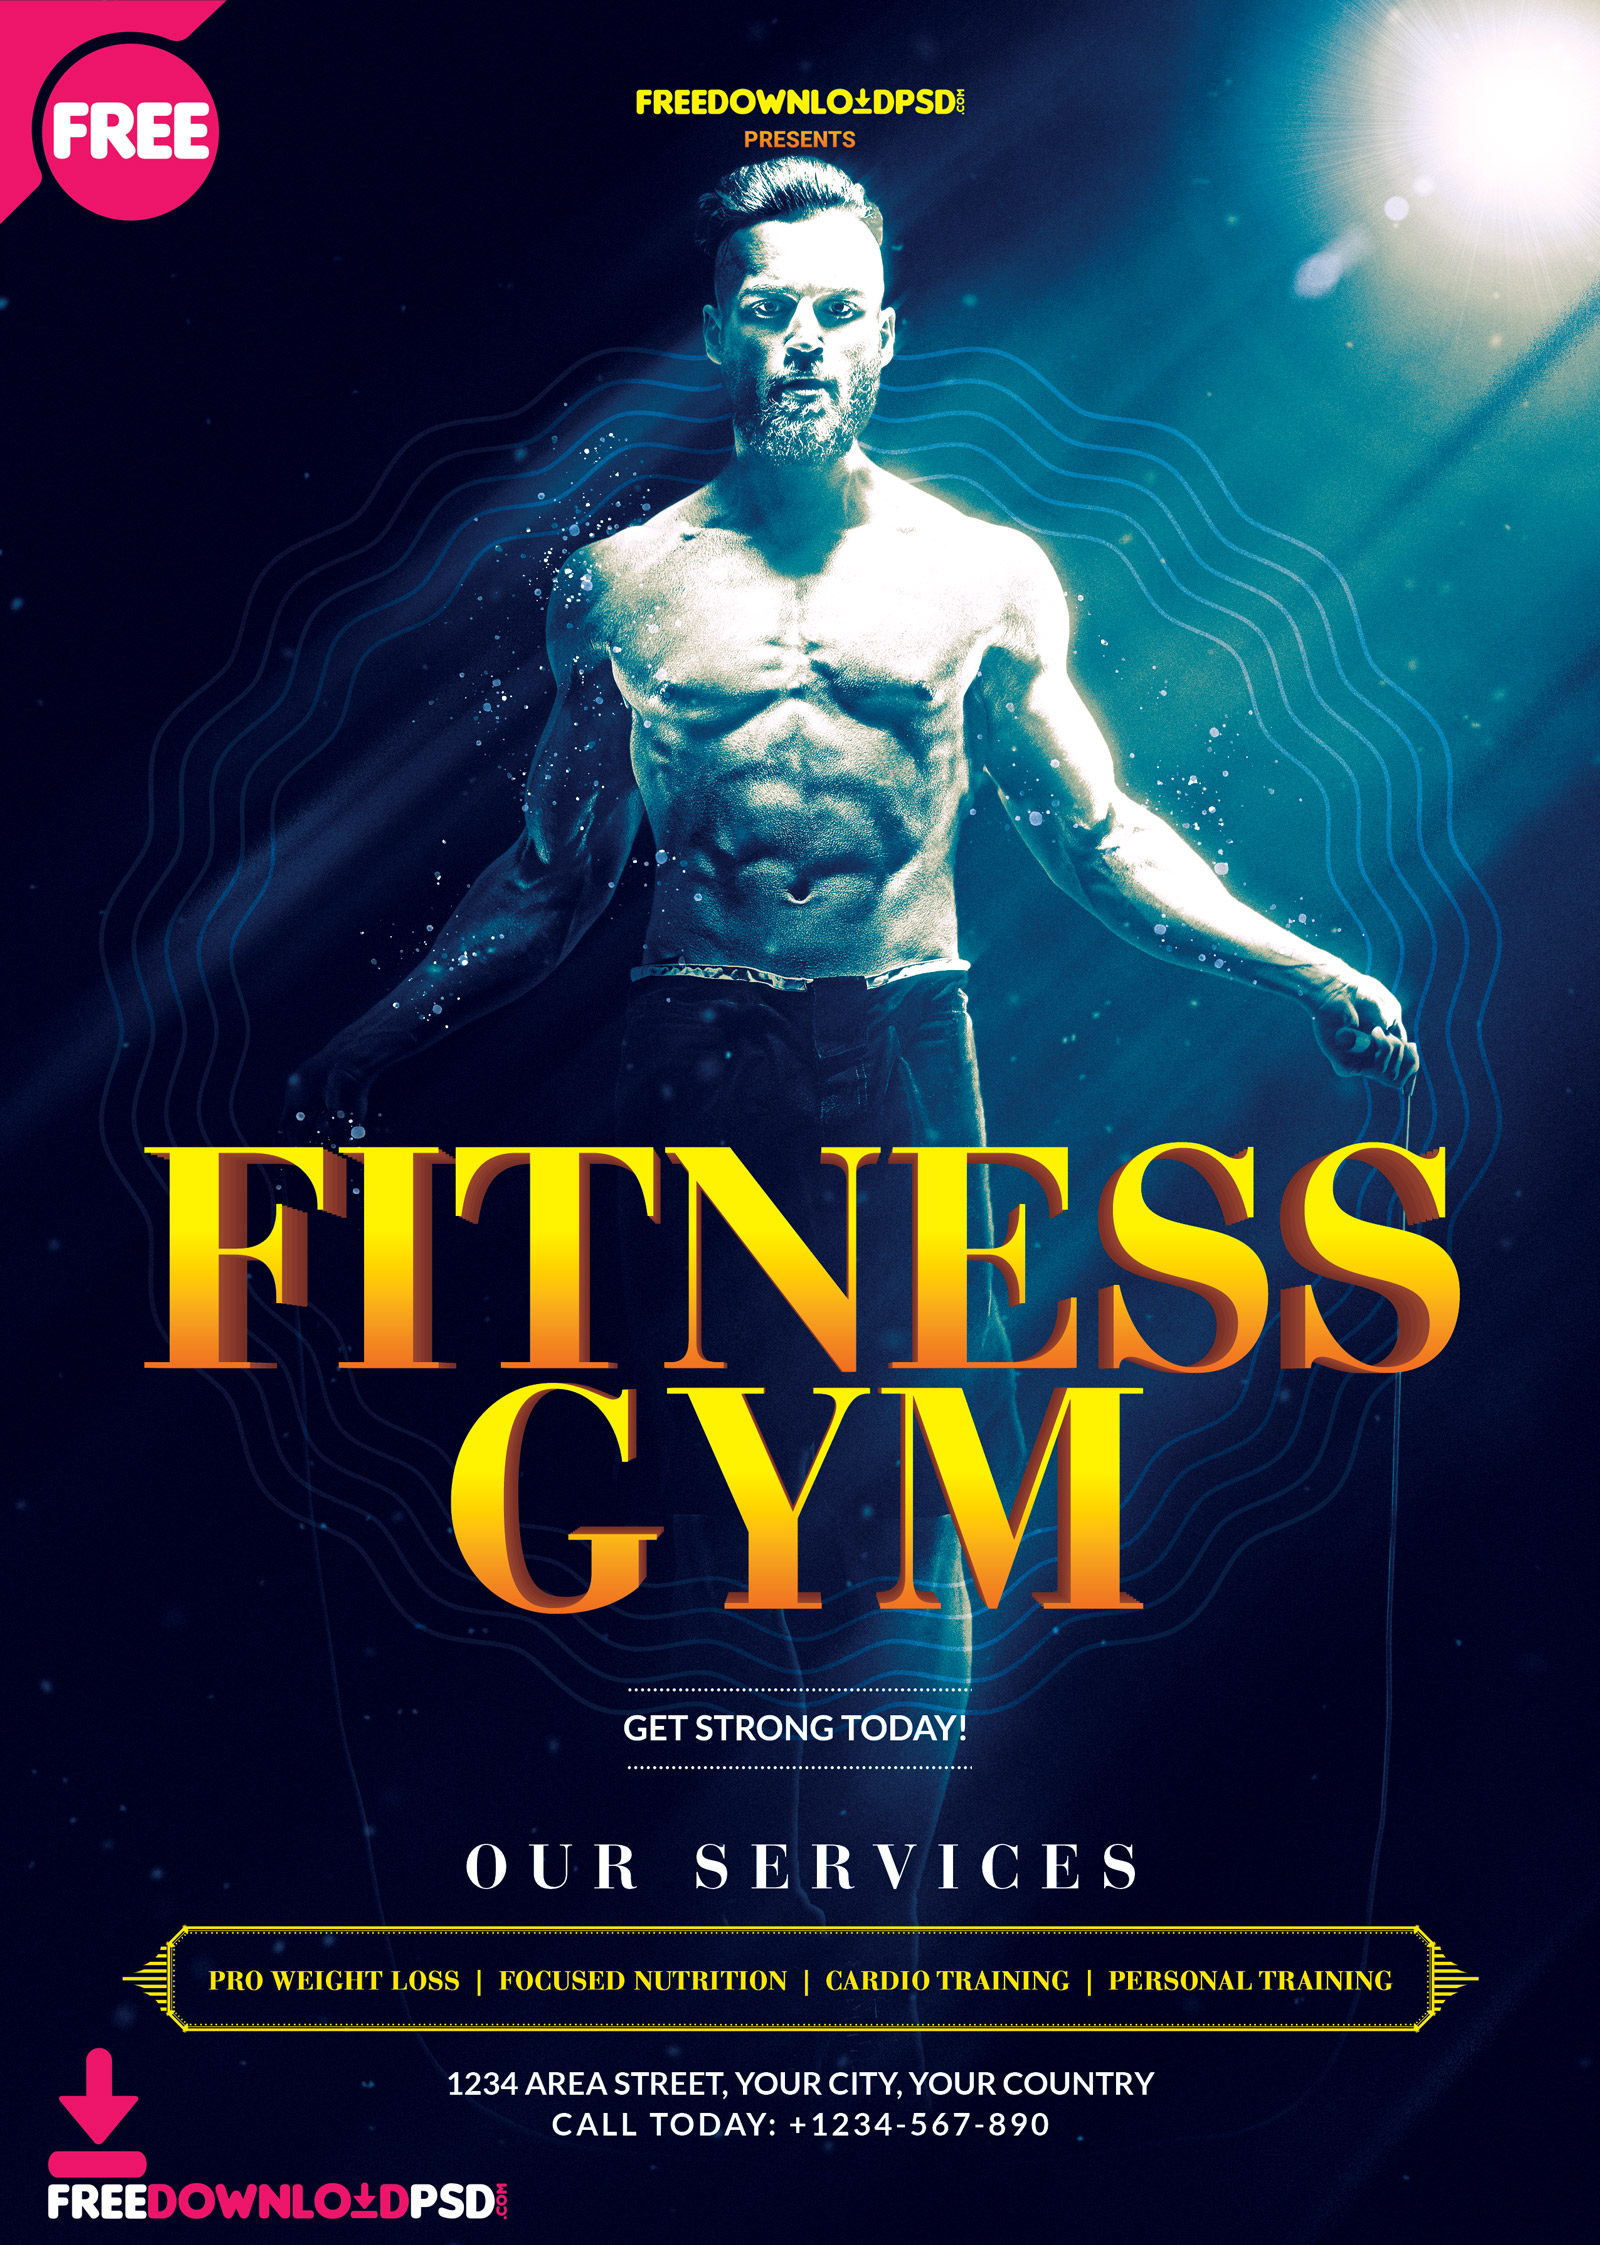 Free Fitness Gym Flyer Psd Template Freedownloadpsd